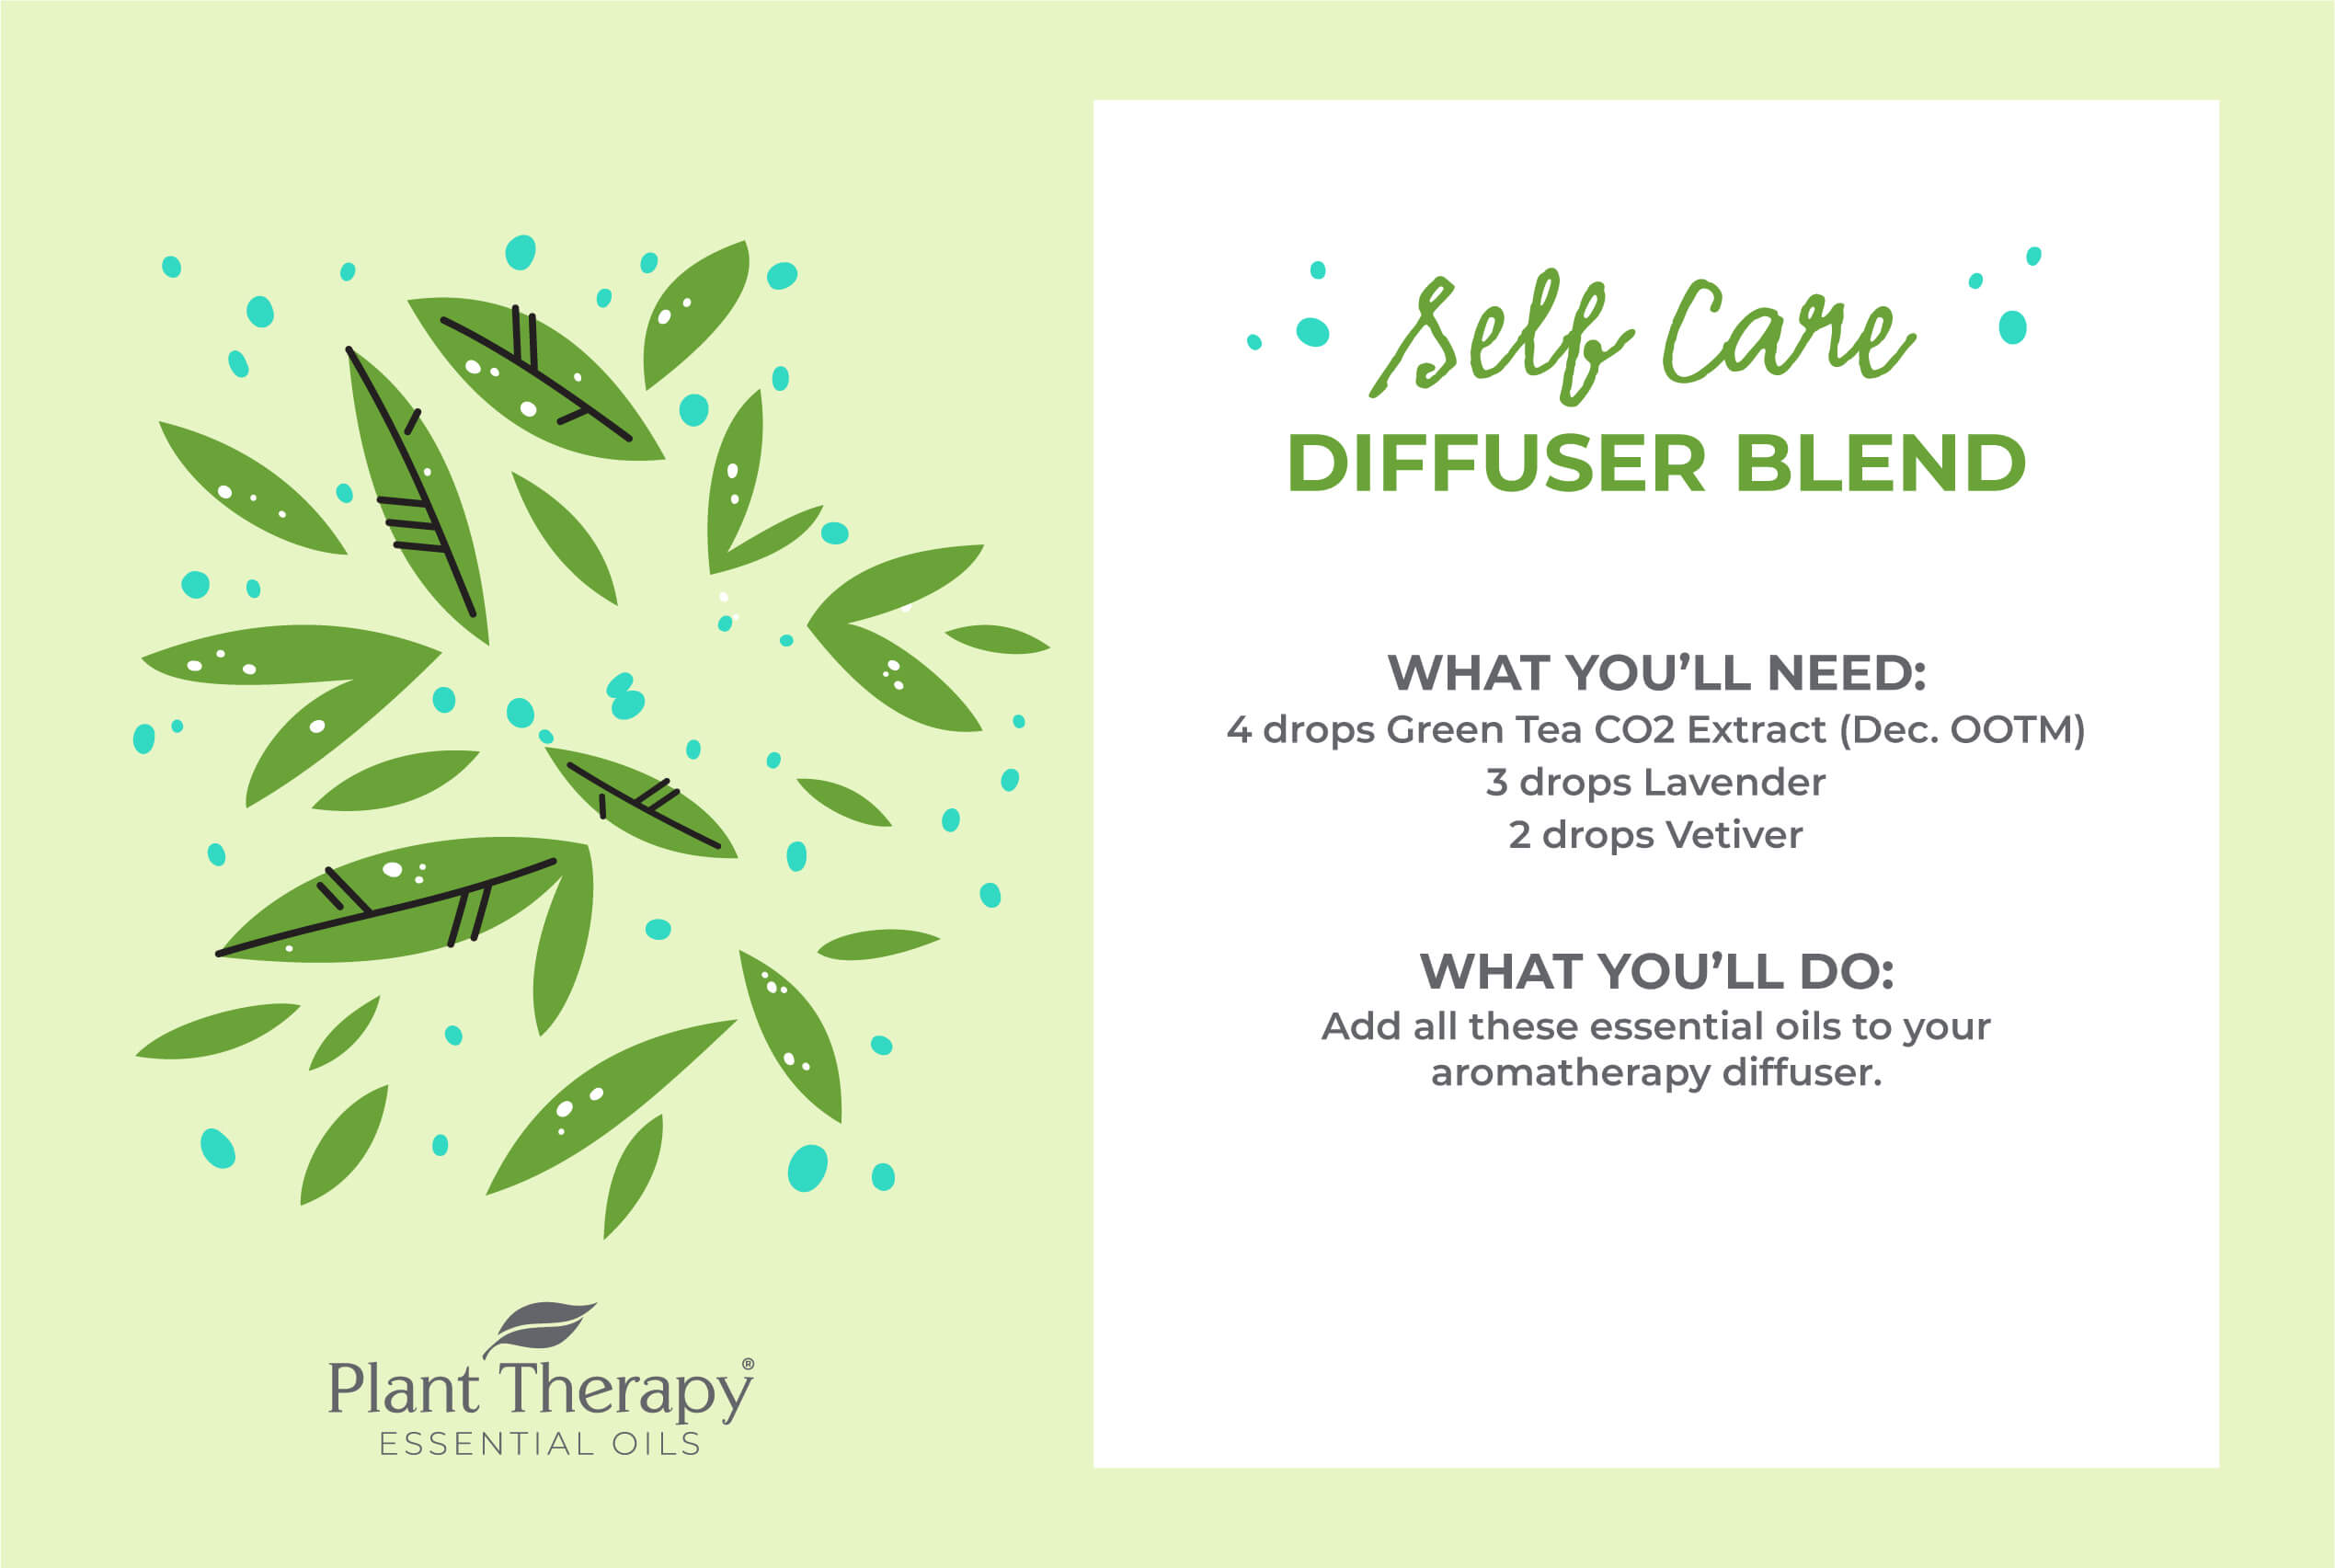 Self Care Diffuser Blend